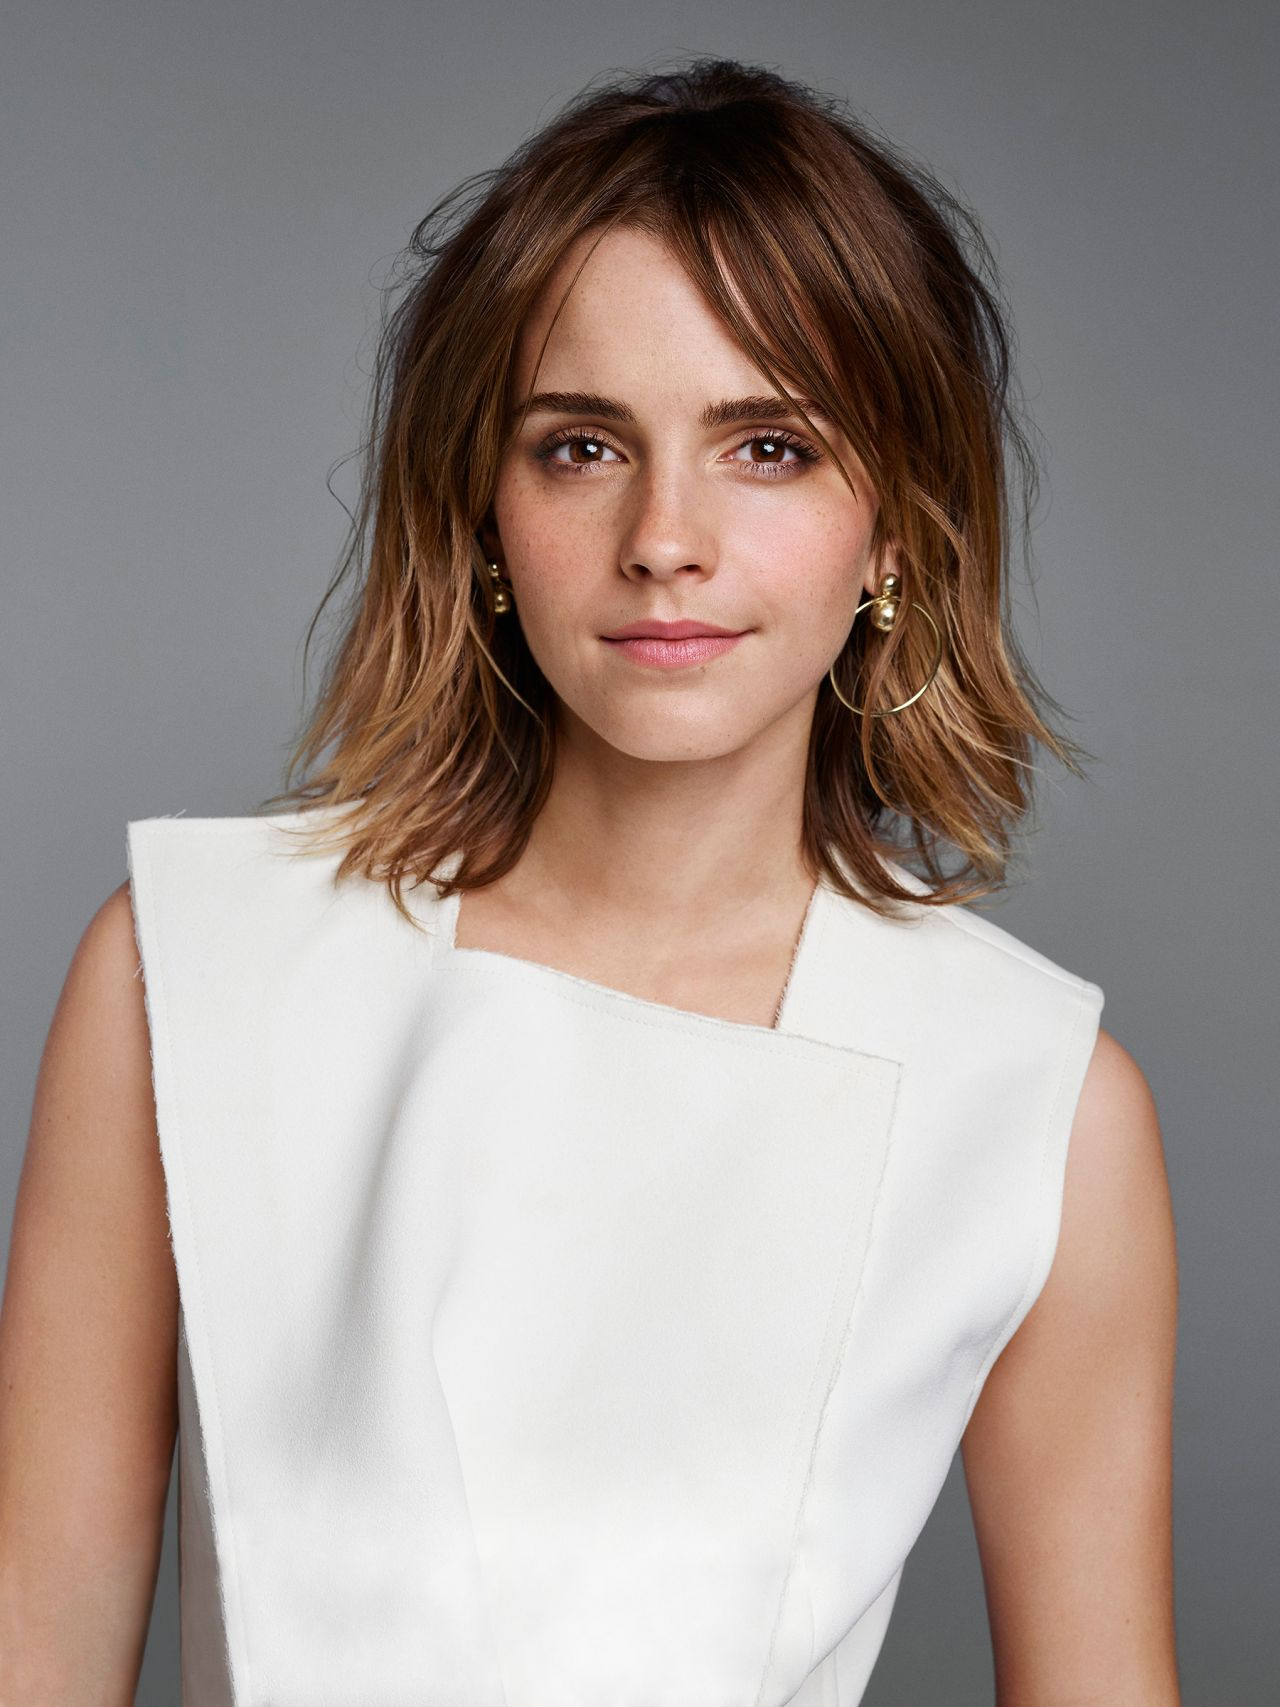 Emma Watson Photoshoot, February 2017